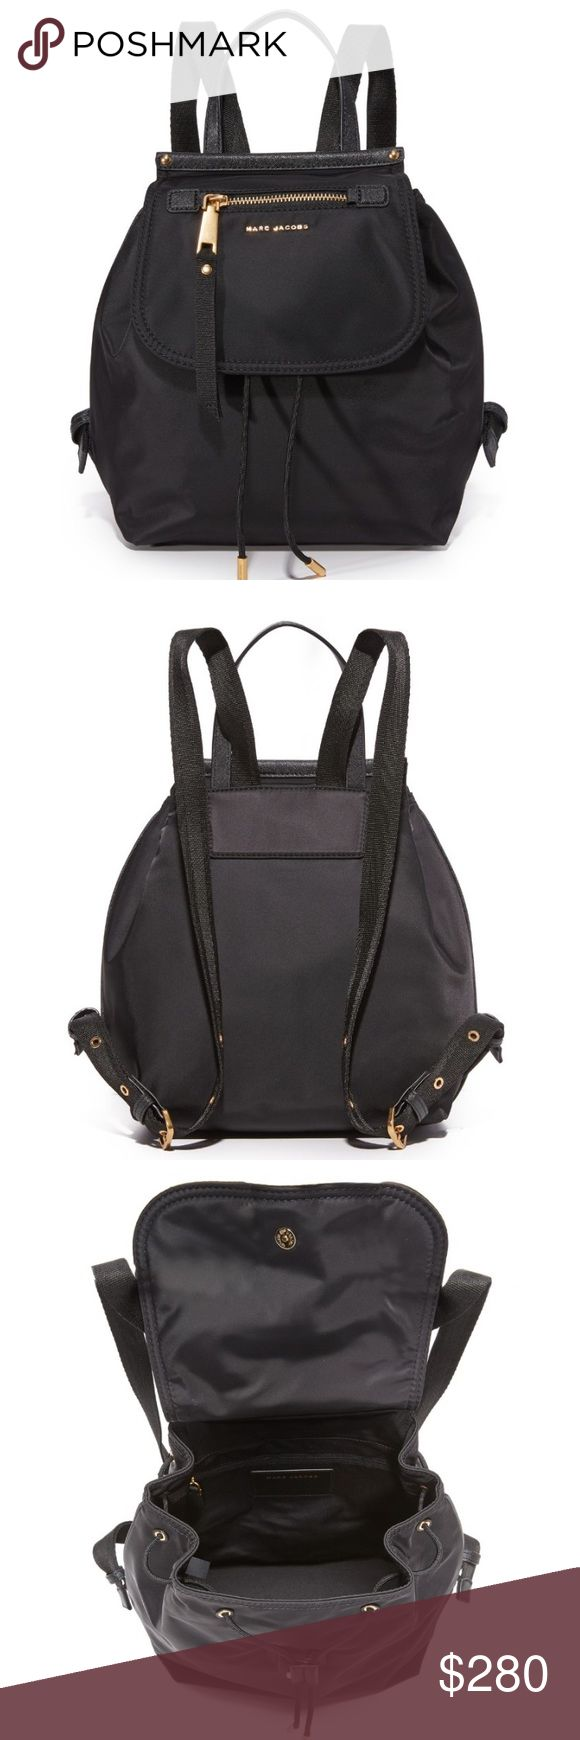 Marc Jacobs Backpack Limited Edition Marc Jacobs Trooper Backpack NEW Marc Jacobs Bags Backpacks